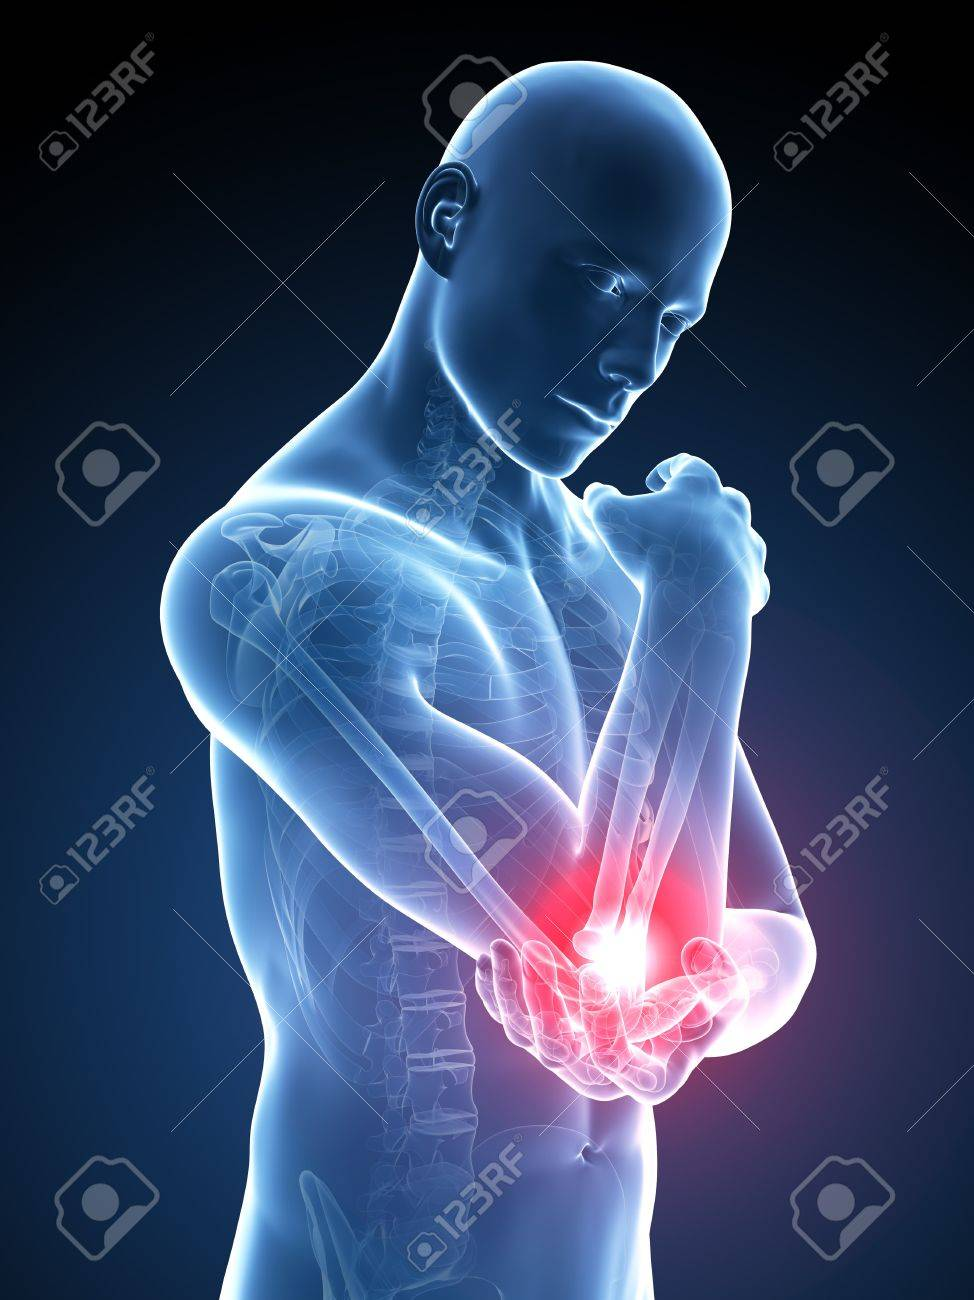 Human Elbow Pain, Illustration Stock Photo, Picture And Royalty Free ...